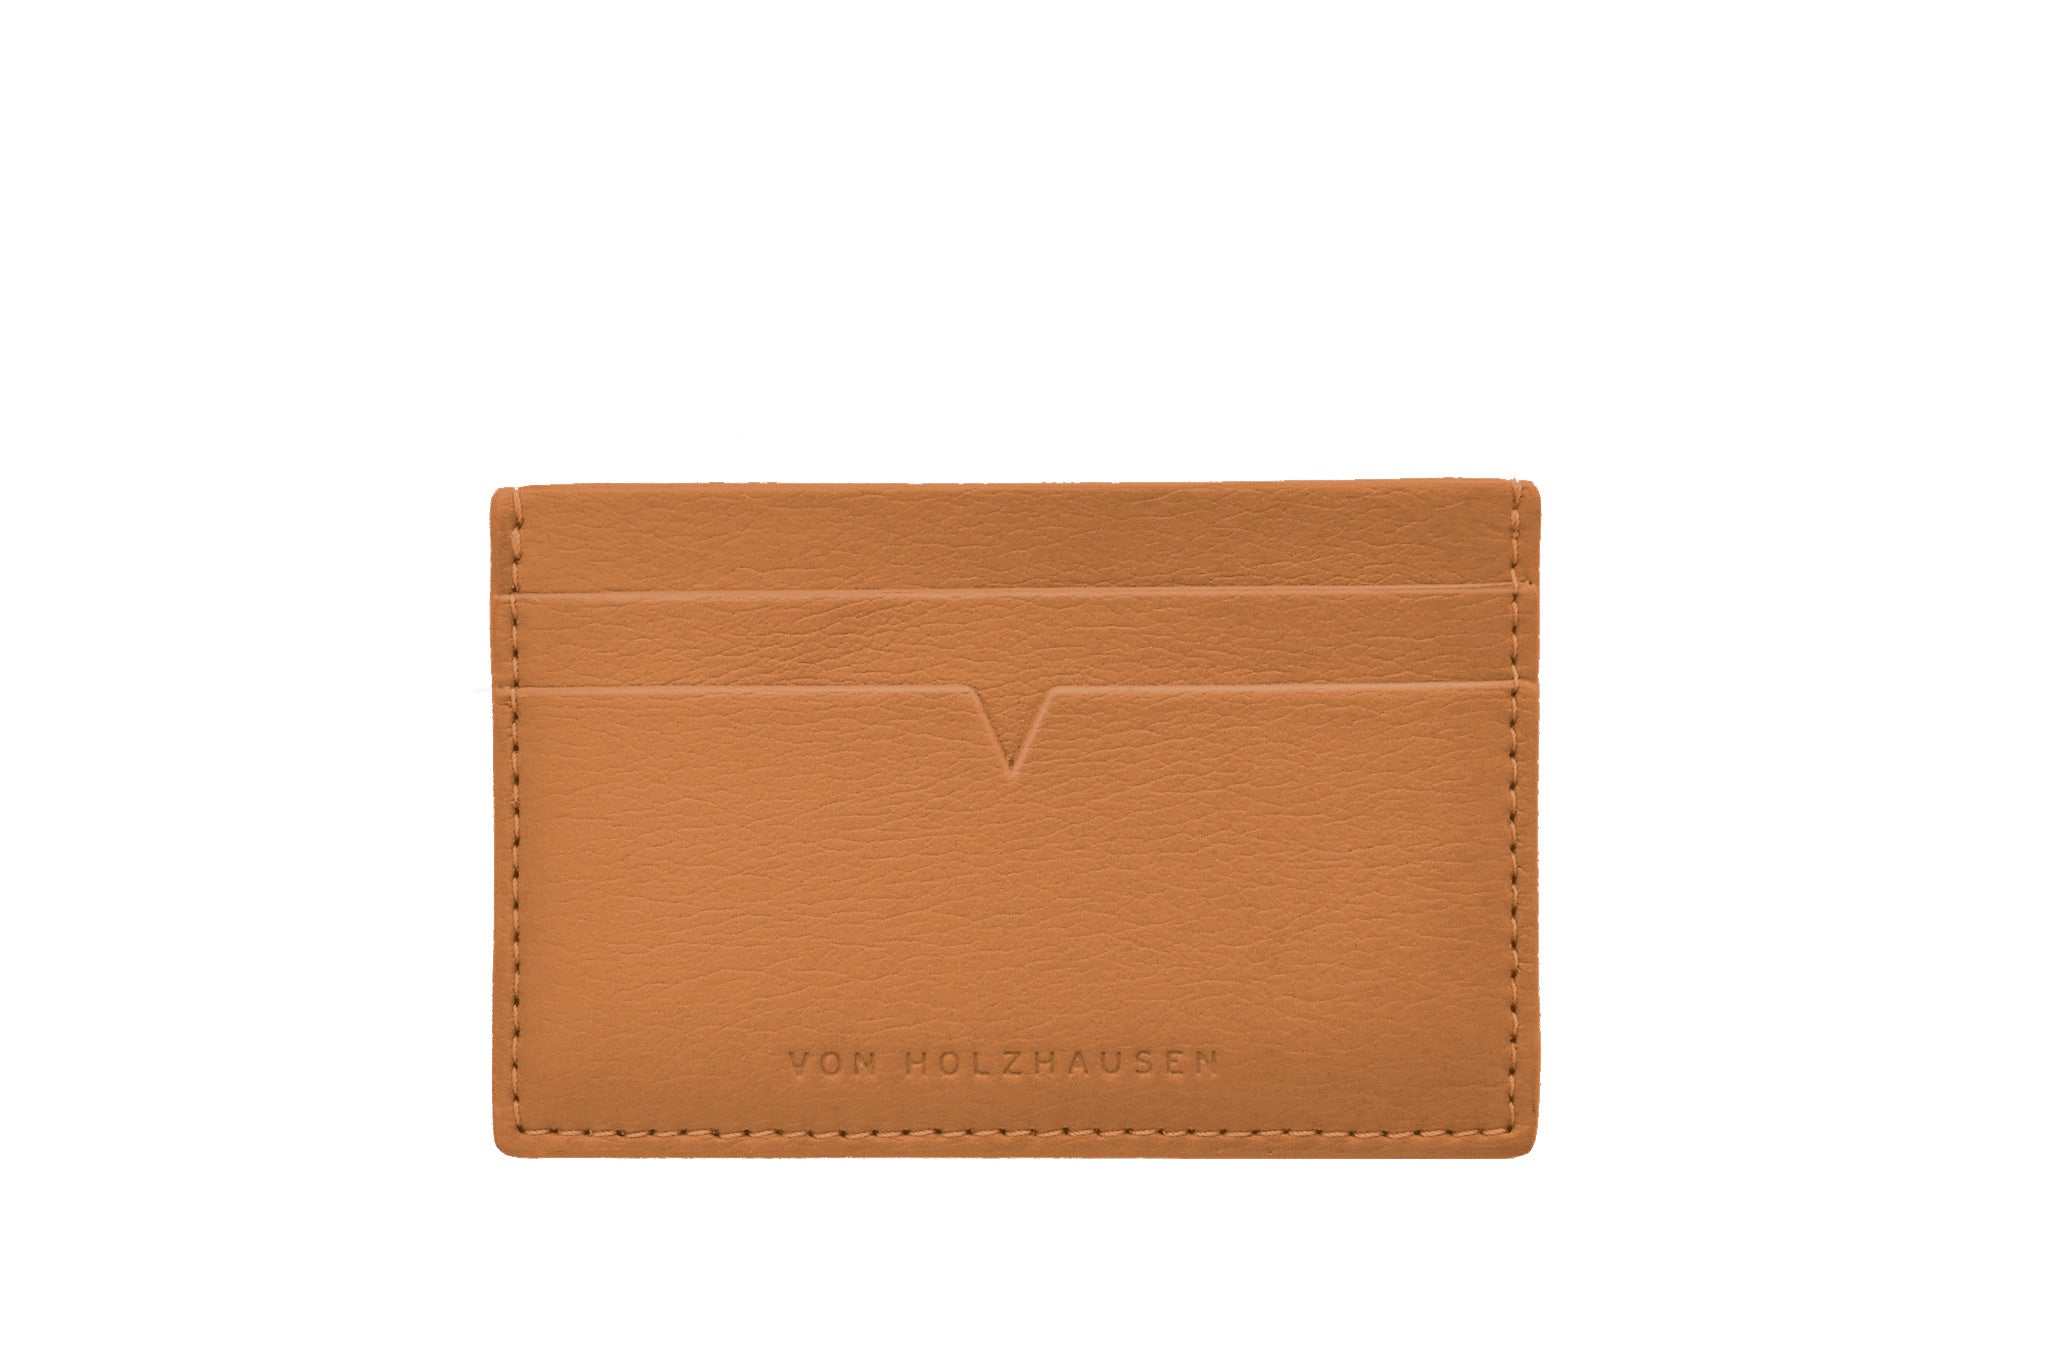 The Credit Card Holder in Technik-Leather in Caramel